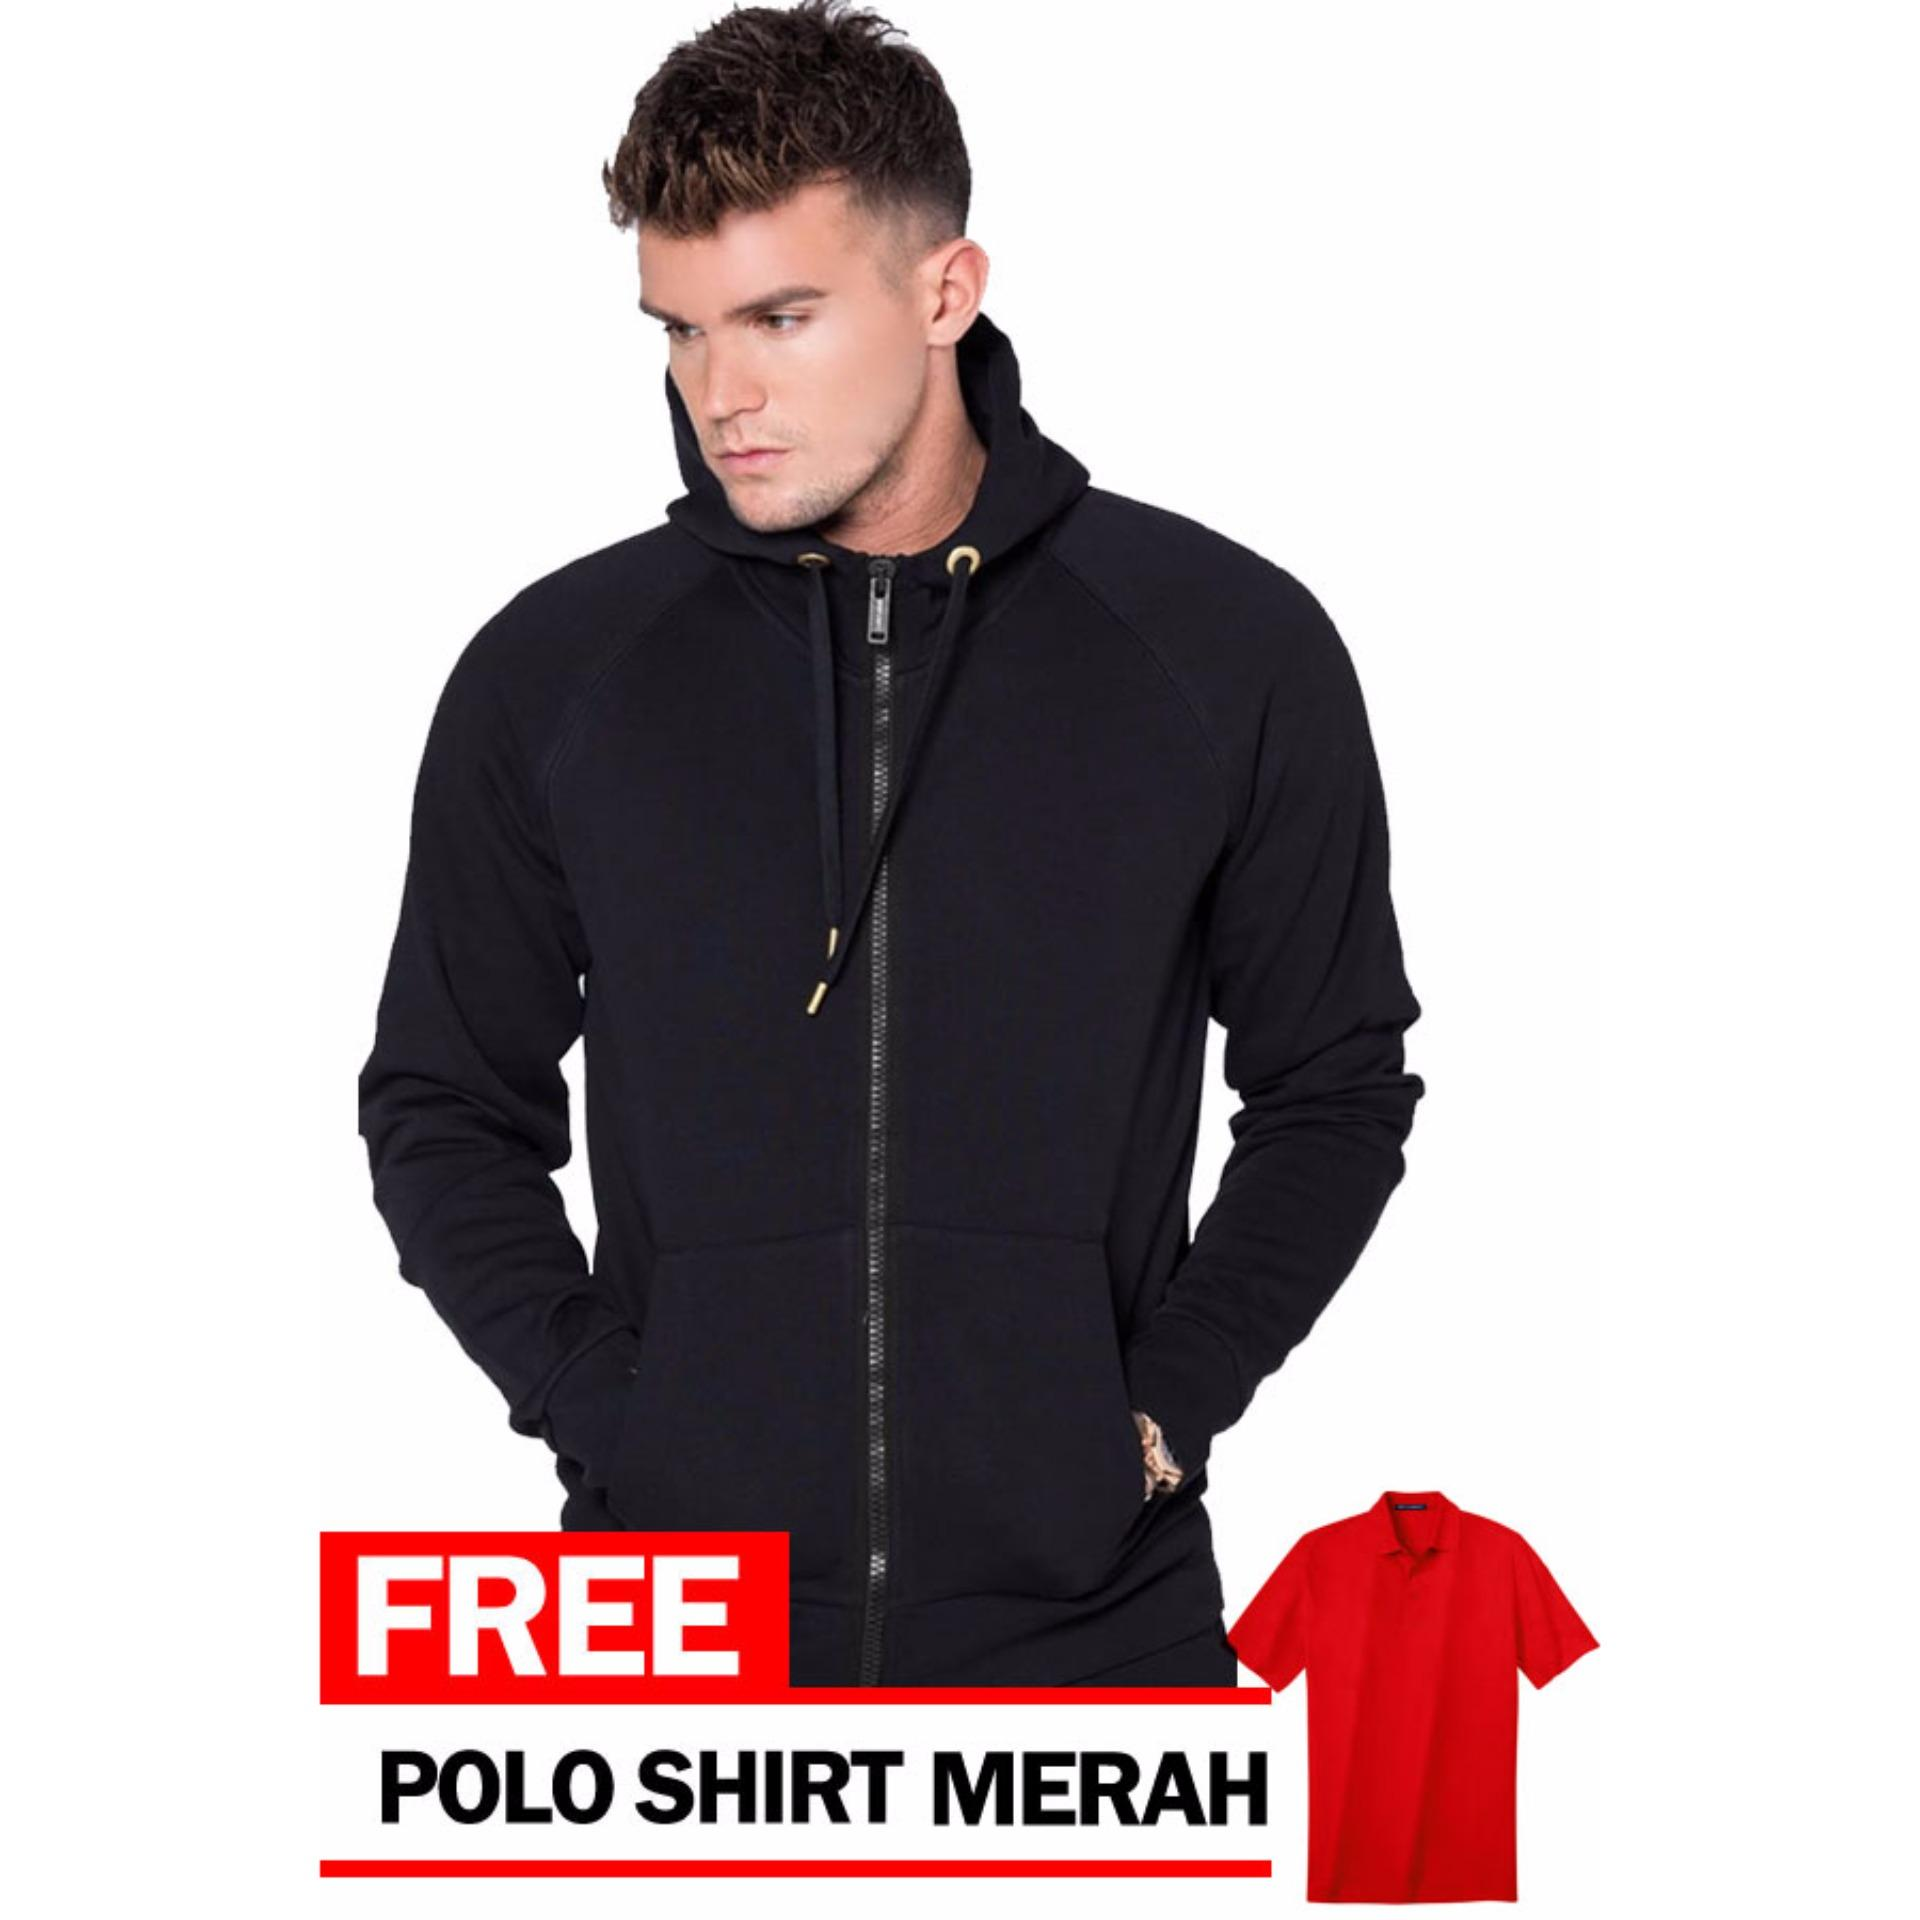 Just Cloth Jaket Zipper Polos Hitam Free Polo Shirt Merah Diskon Banten